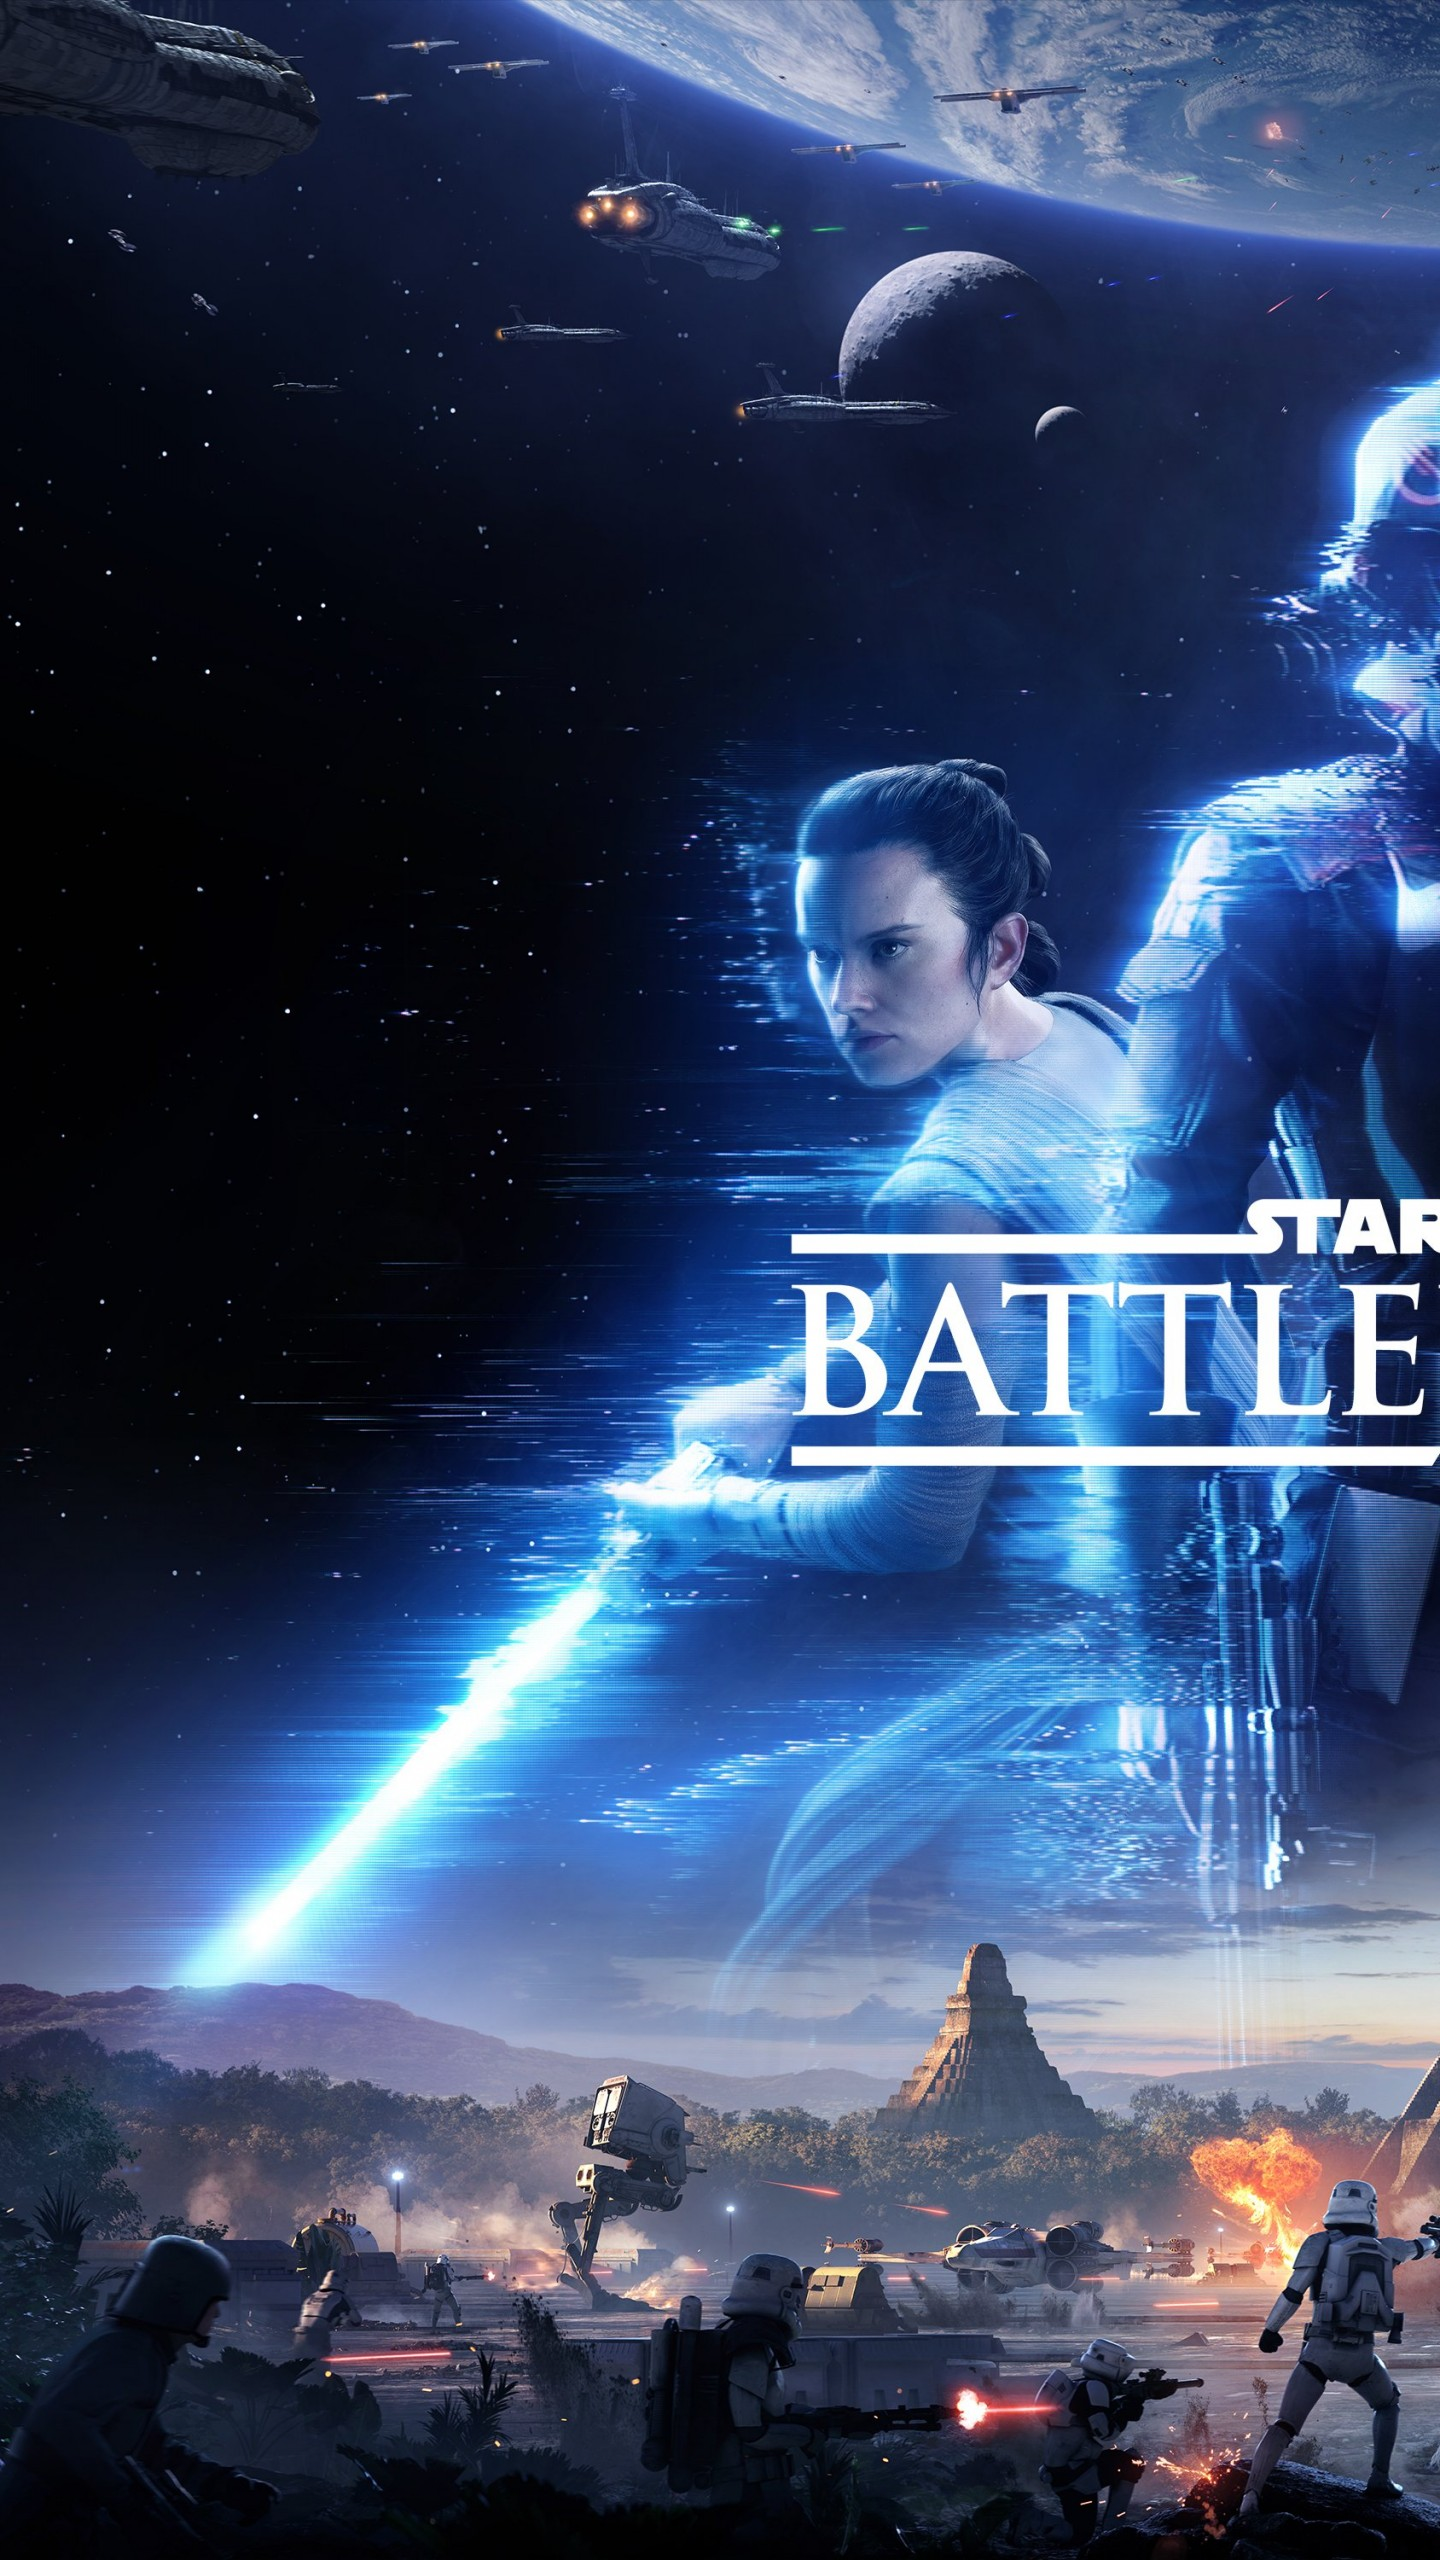 Wallpaper Star Wars Battlefront Ii 4k 5k Poster Games 13411